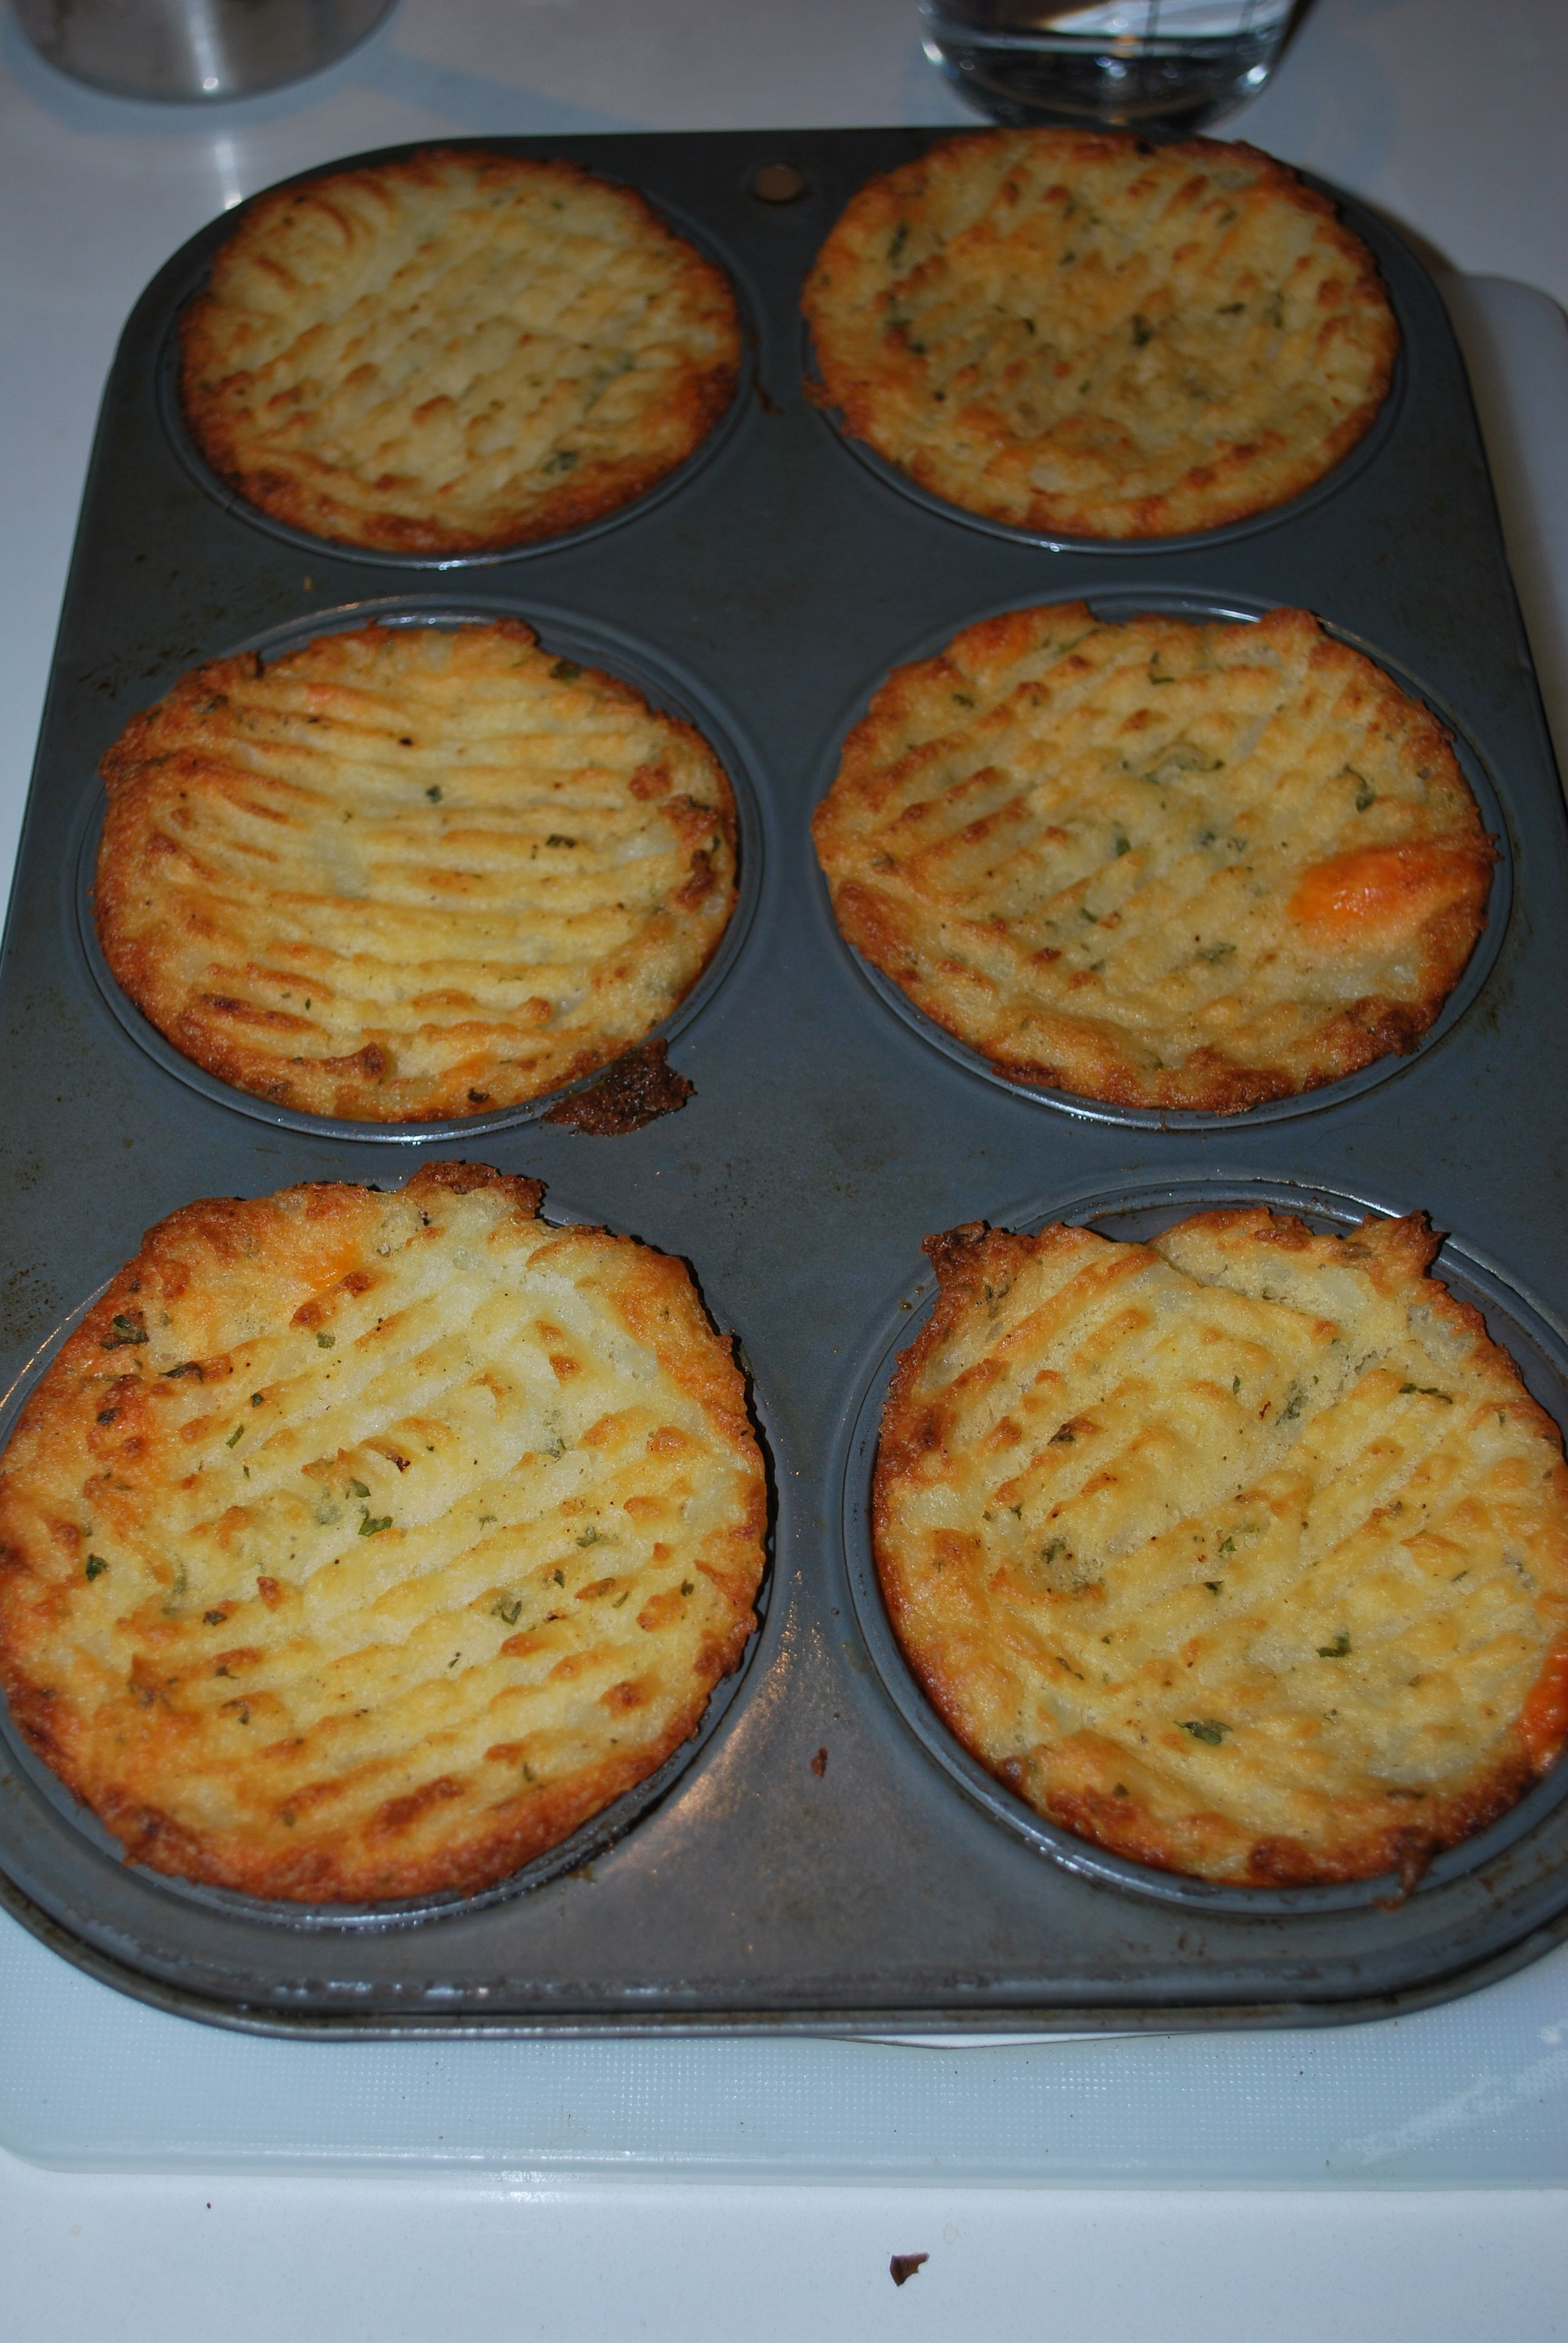 Pinner says:  I always make these potatoes at holiday time for big dinners. They are easy to make: Just mash potatoes plain with butter or you can add yummy ingredients like cooked bacon, cheese, parsley, green onion etc. Stuff in to a greased muffin tin, run a fork along the top and brush with melted butter or olive oil. Bake at 375 degrees or until tops are crispy and golden. These are always a family fave in my house!!